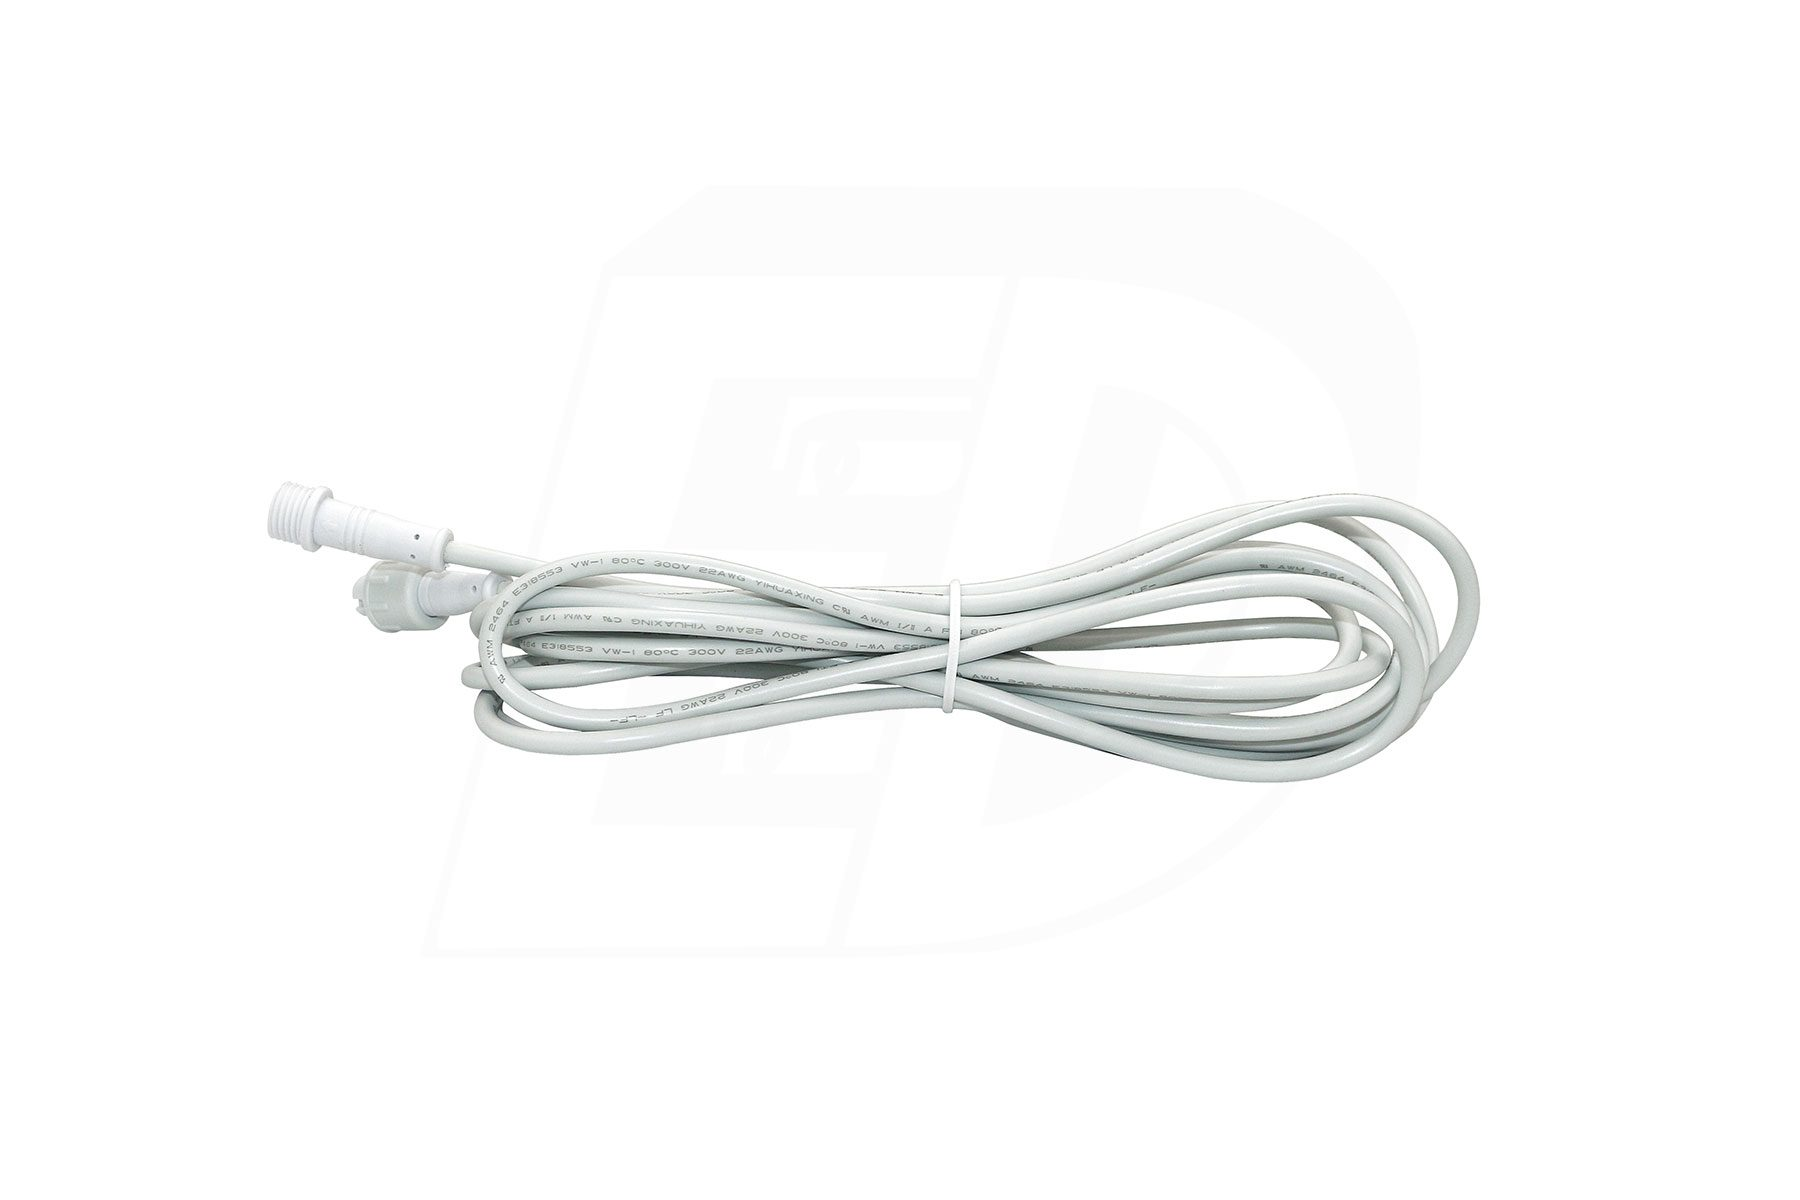 72″ Long Extension Cord for DLSG 3 Inch. Round and Square LED Gimbal Recessed Light / DLRB 2 Inch. Round and Square LED Baffle Recessed Light